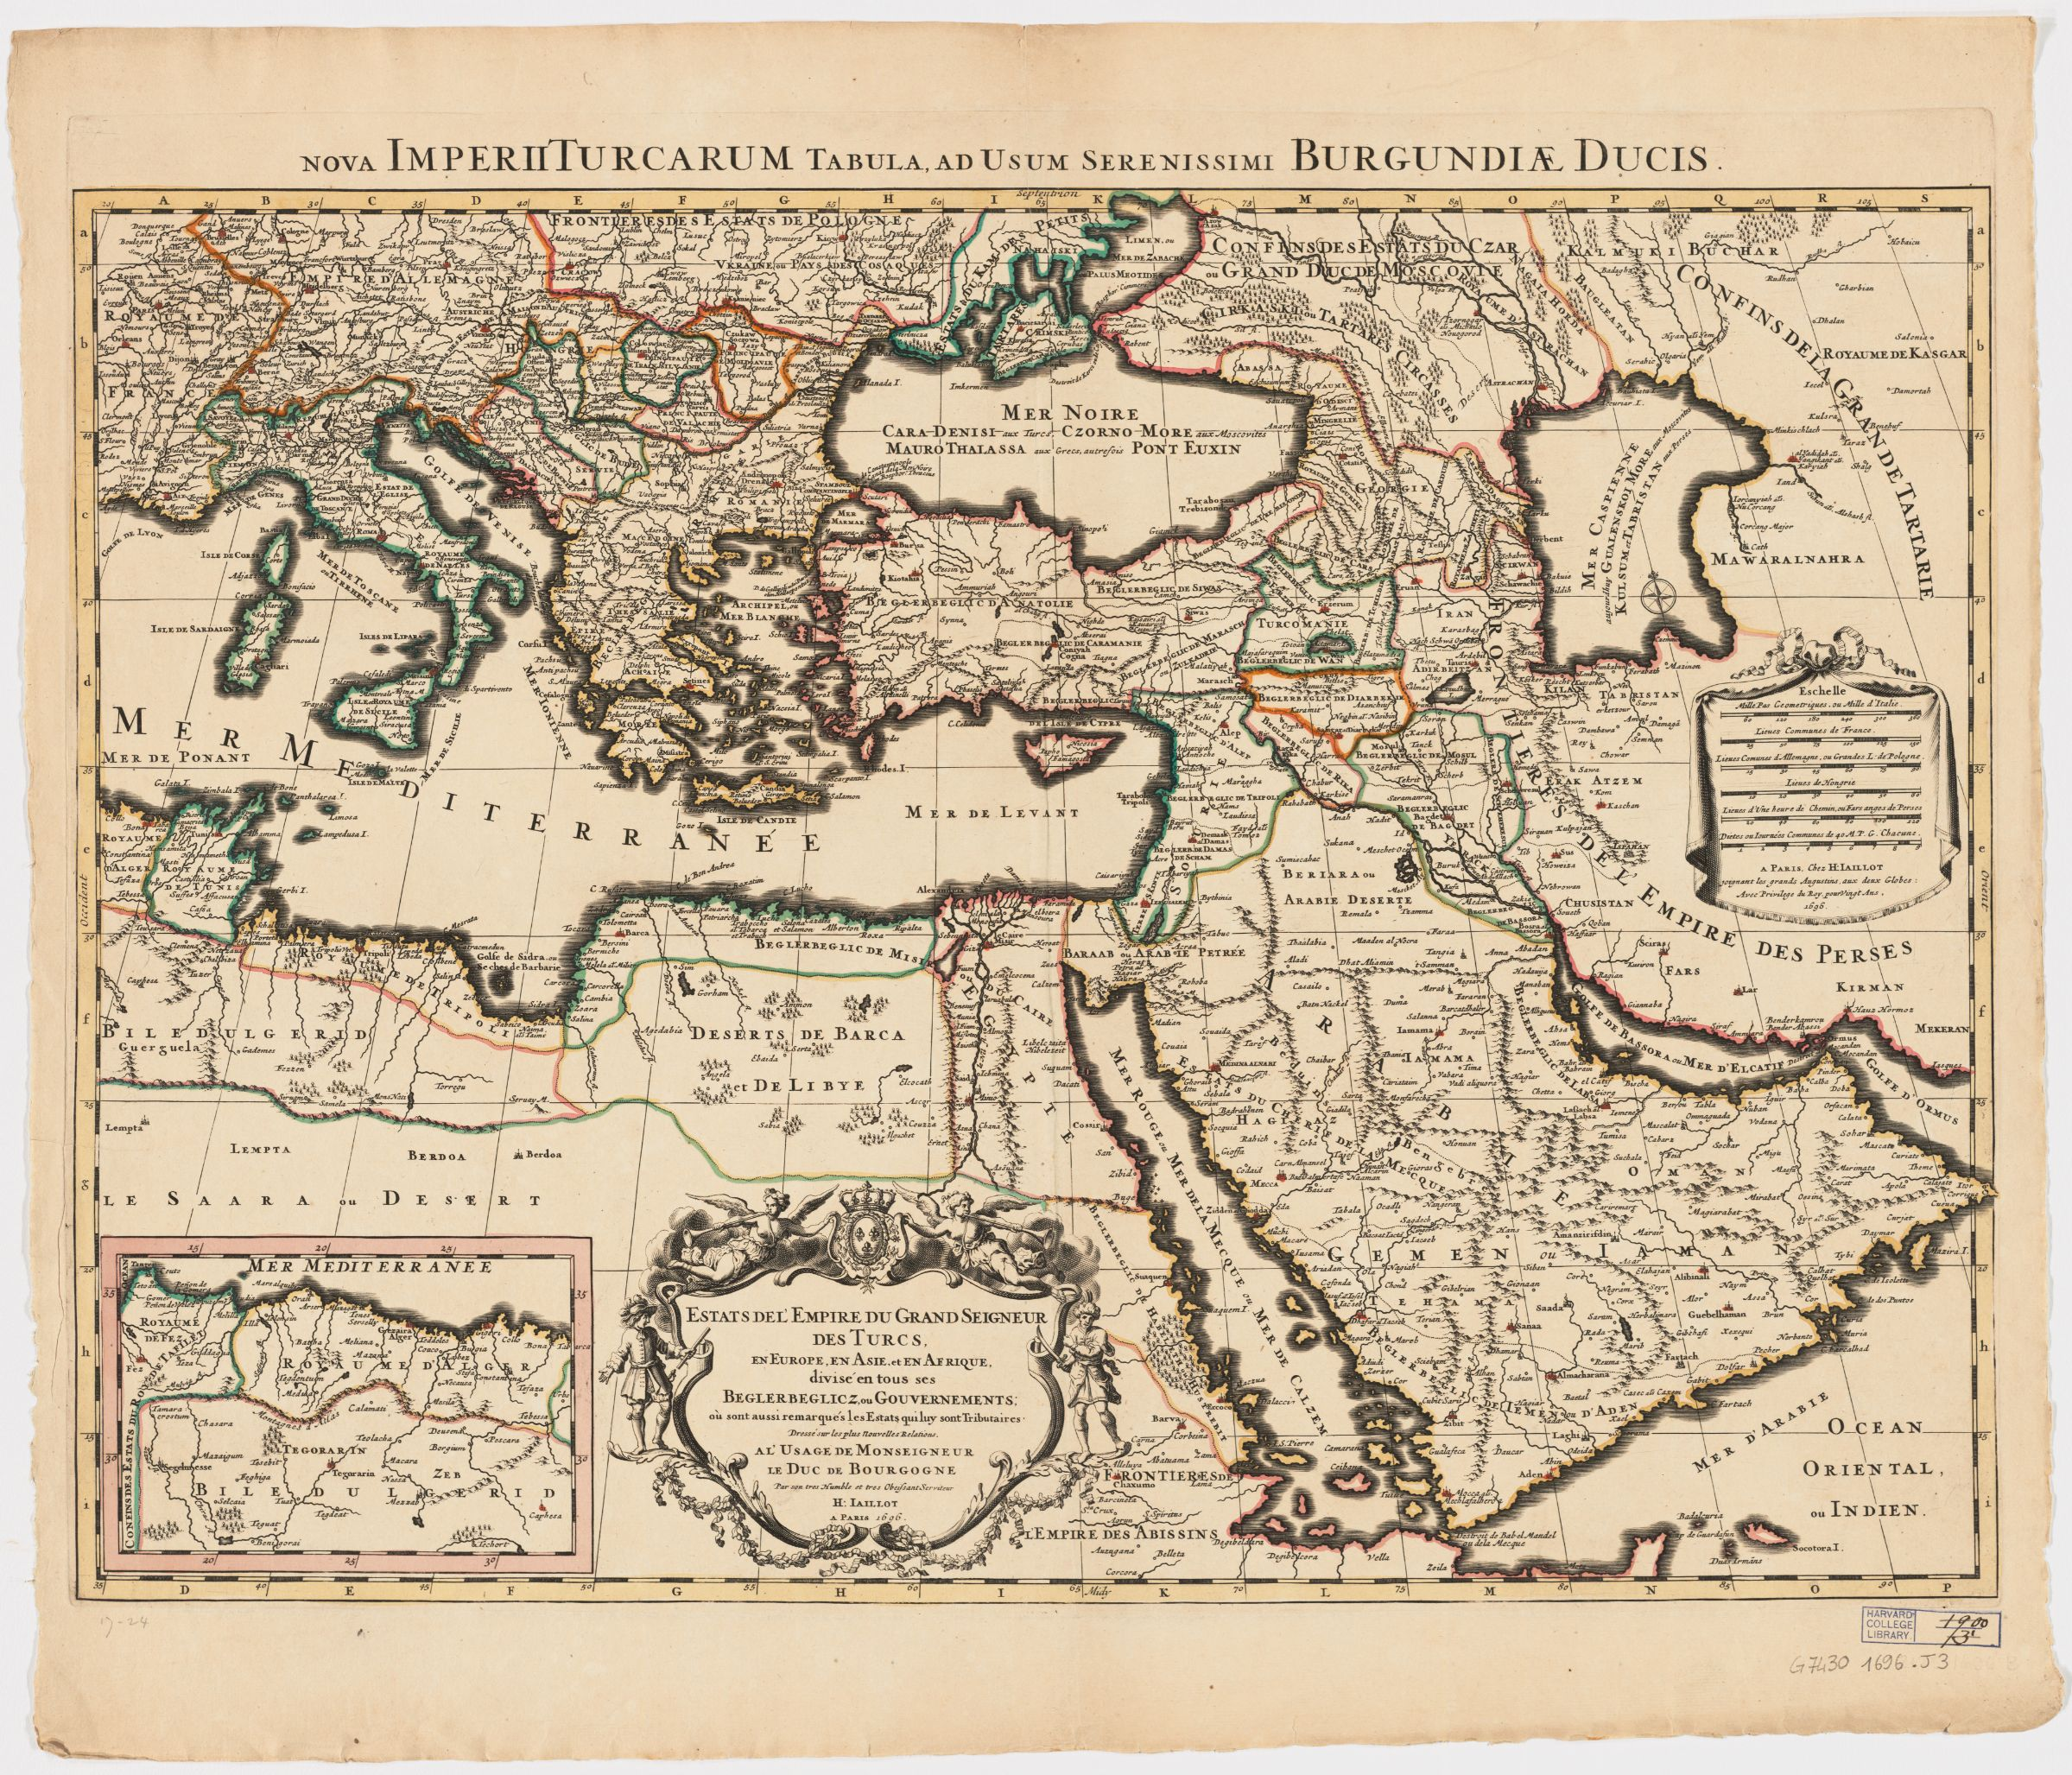 ottoman empire and continuities 1750-1900 changes and continuities print changes industrial revelution 1750 - 1850  was the reorganization of the ottoman empire opium wars 1839 - 1860.